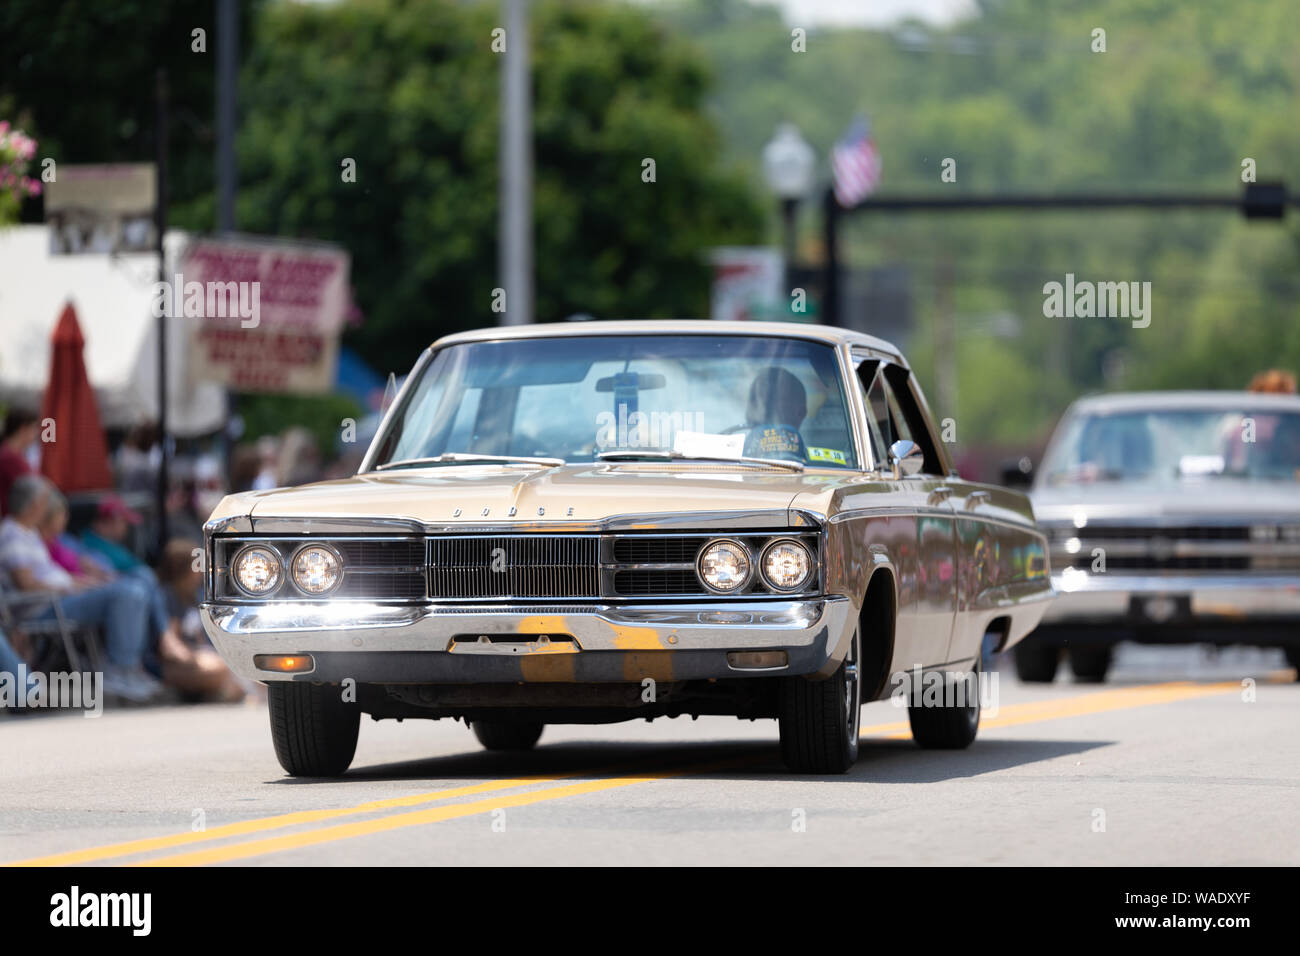 Haynes Apperson Festival 2020.Dodge Coronet Stock Photos Dodge Coronet Stock Images